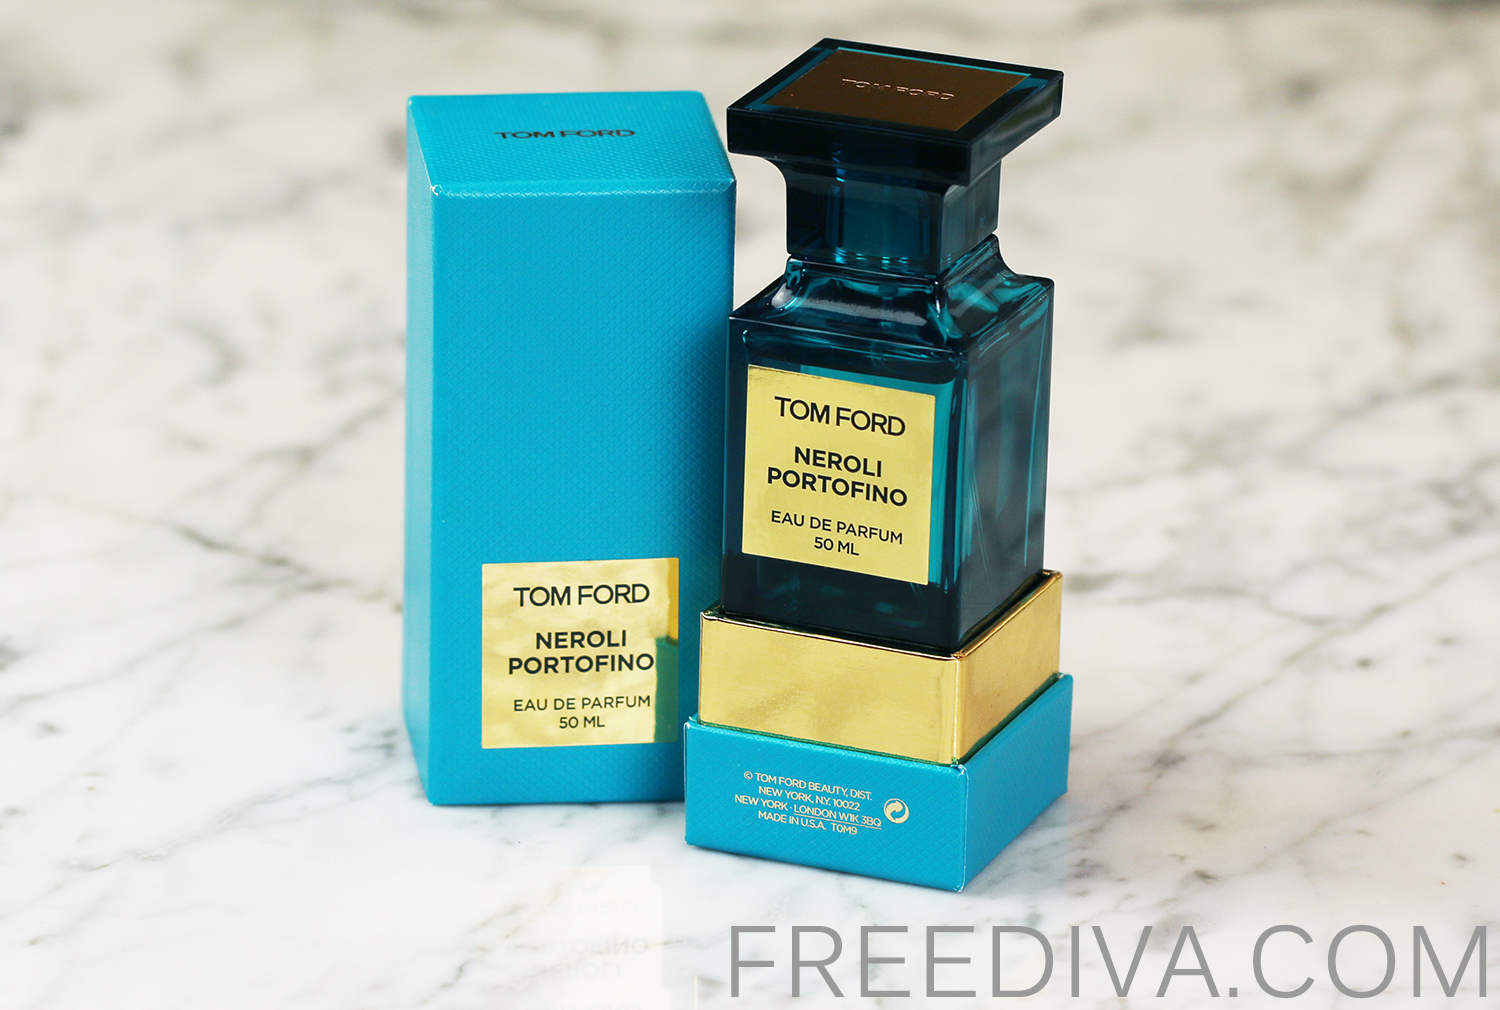 tom ford neroli portofino edp eau de parfum fragrance notes. Cars Review. Best American Auto & Cars Review